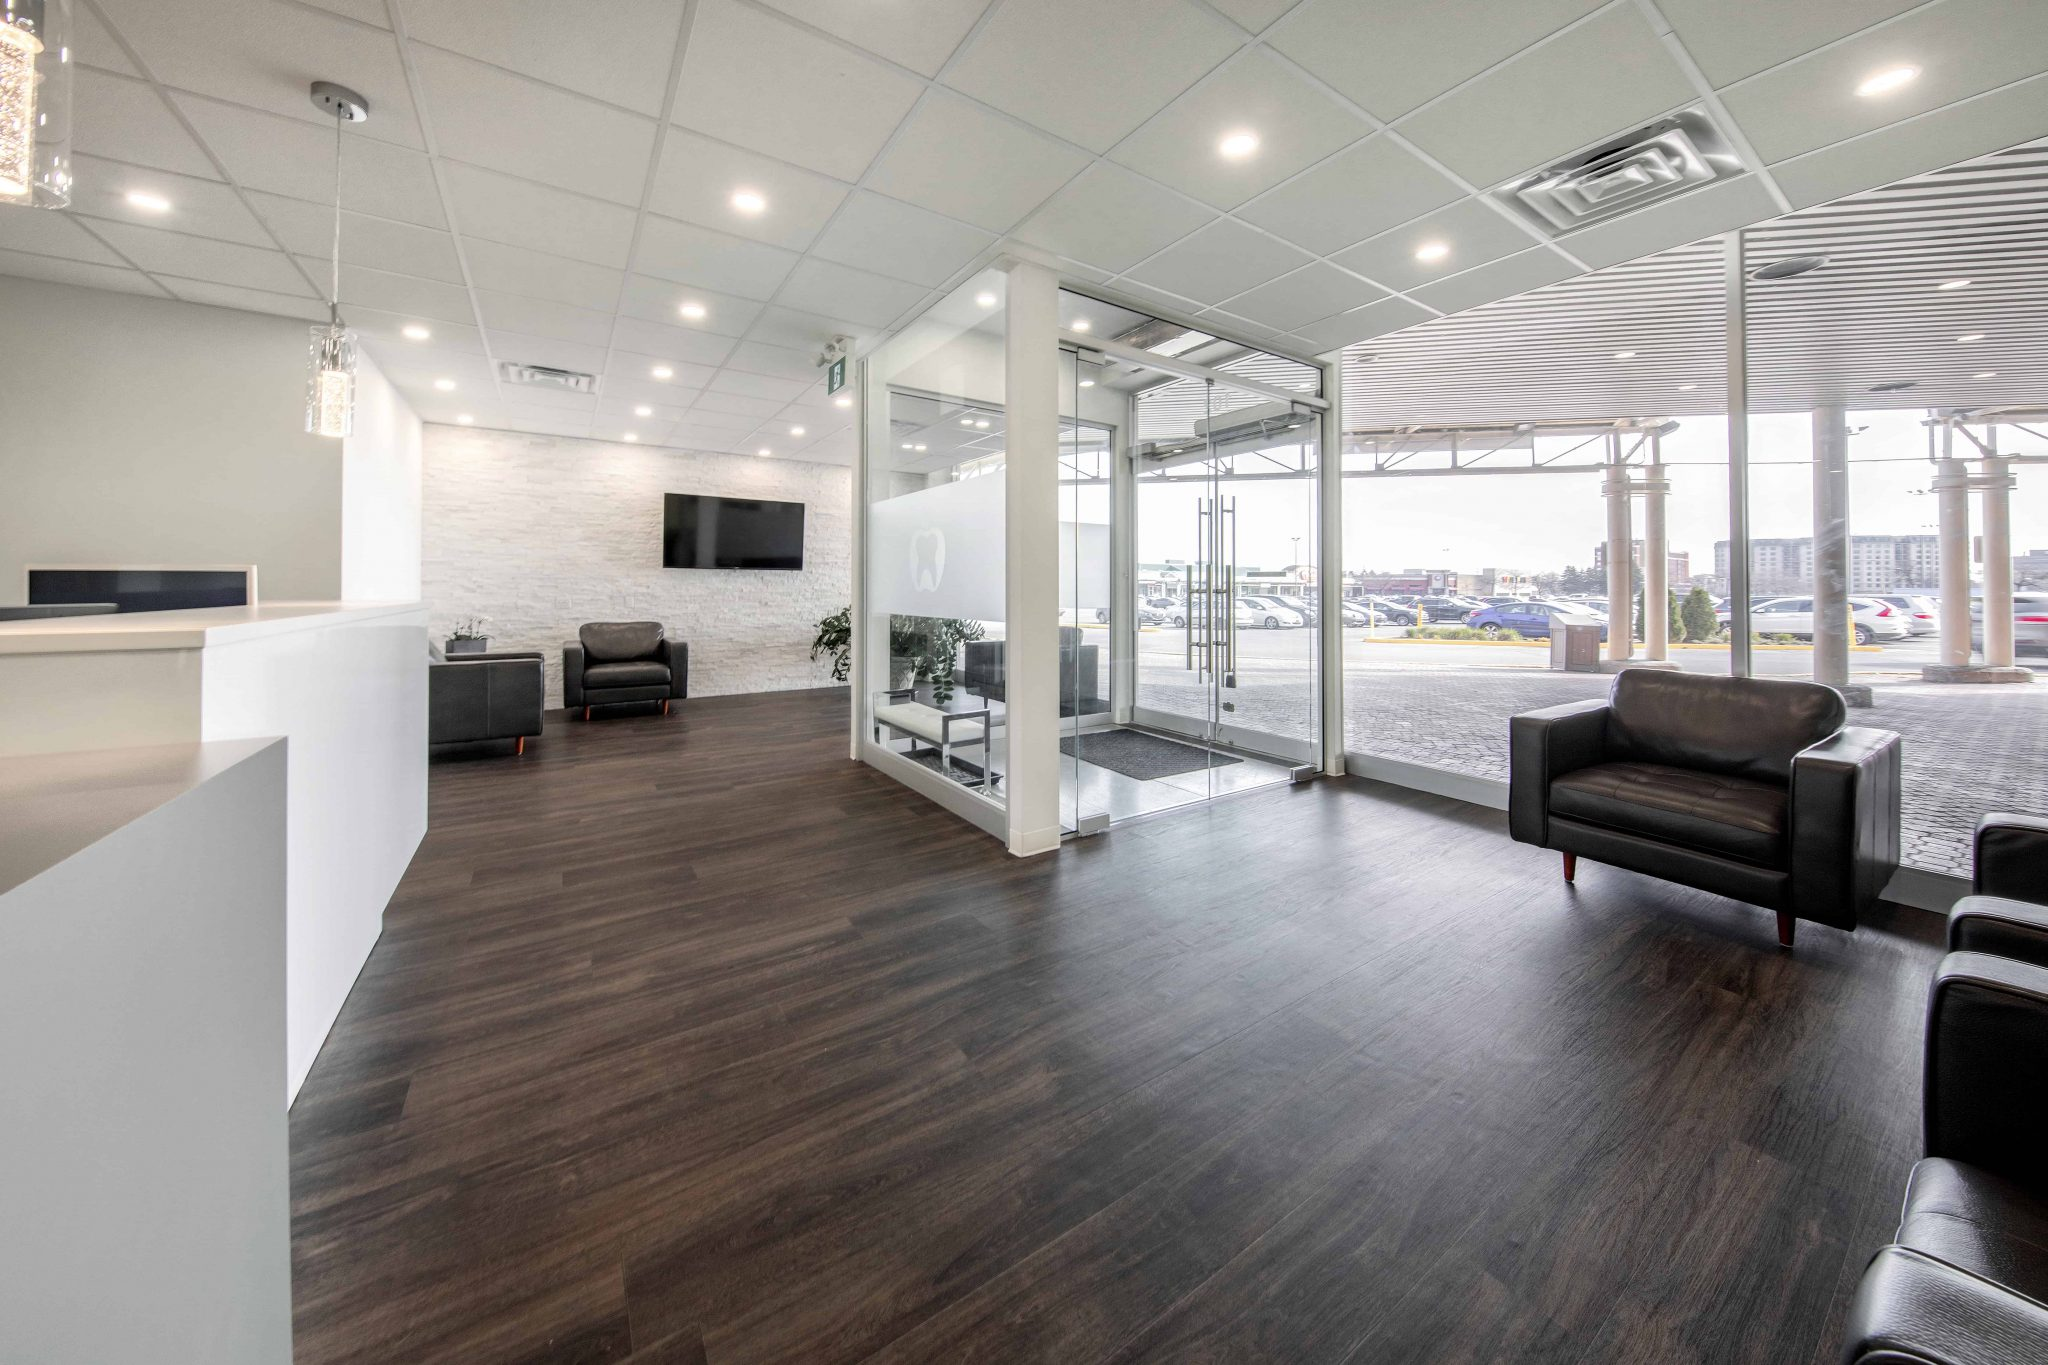 West Island Dental Clinic avis, opinions et commentaires